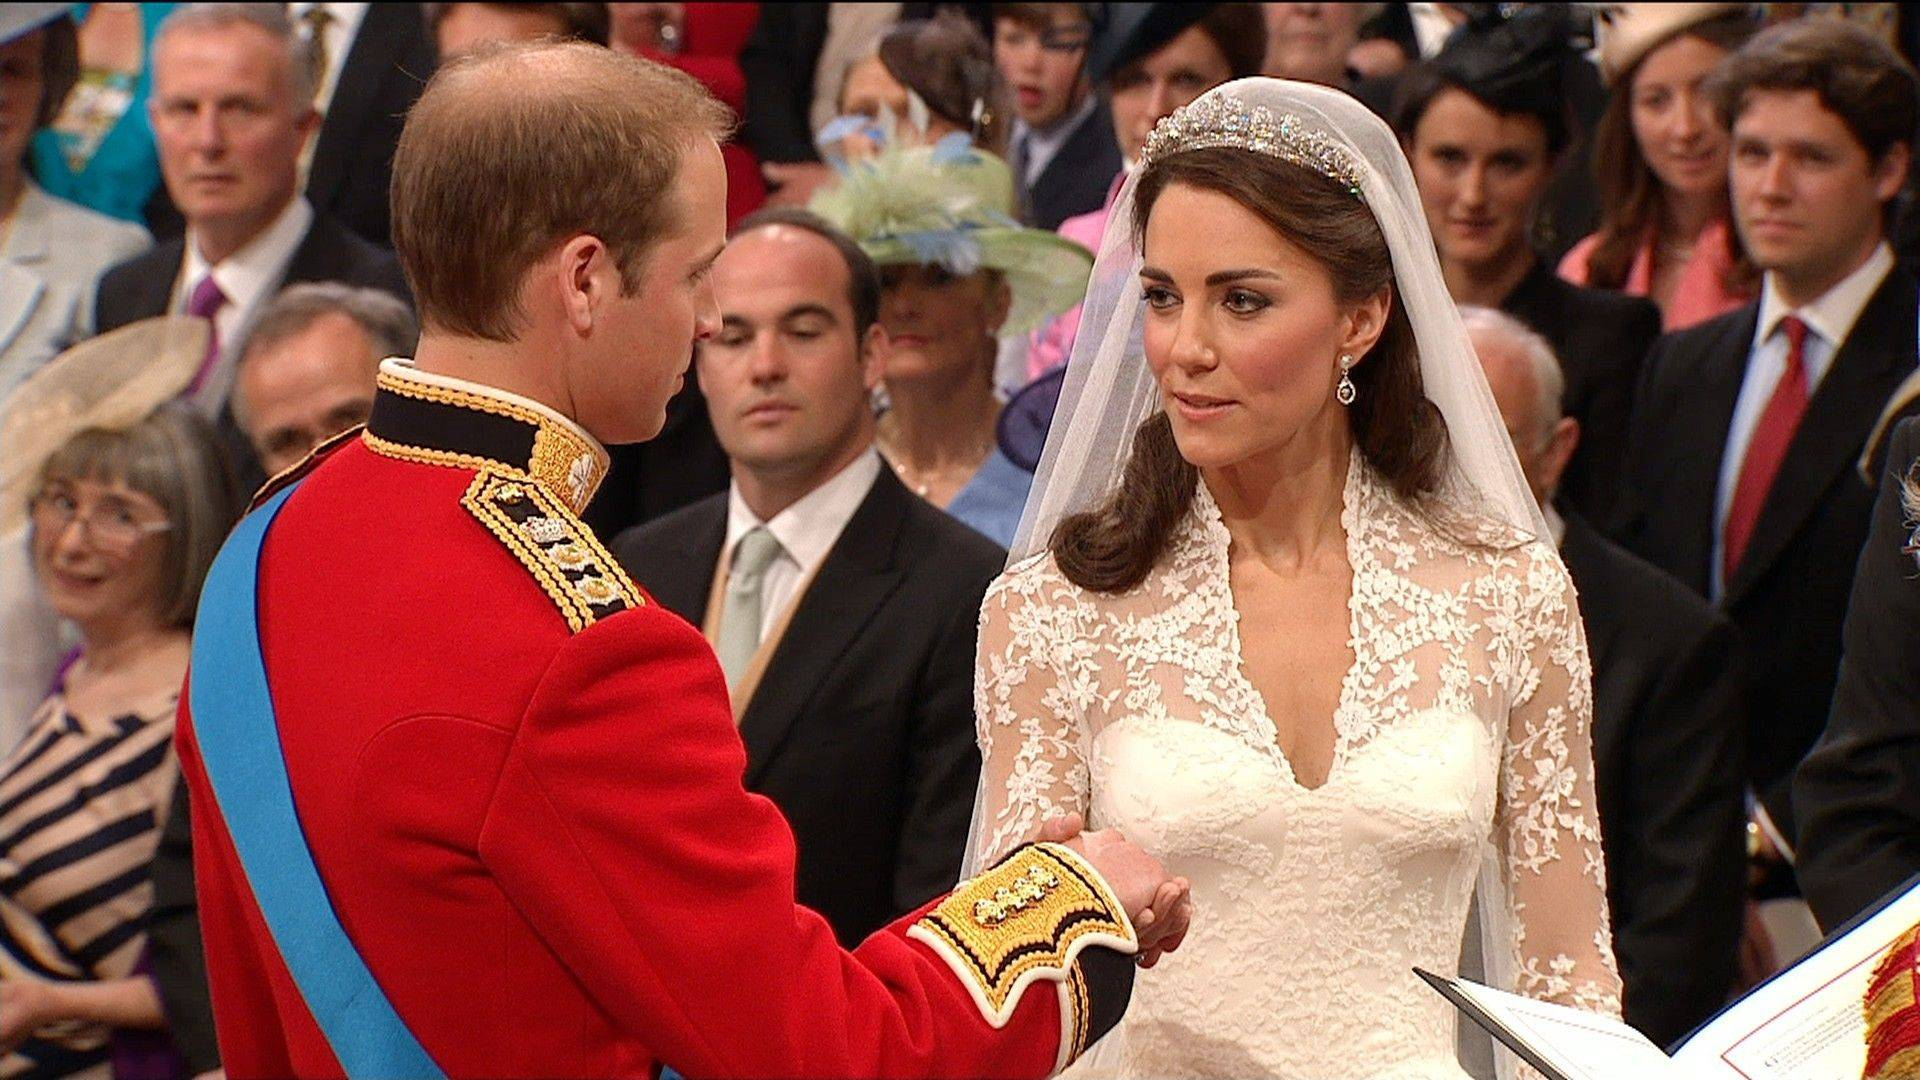 Britain's Prince William, left, takes the hand of his bride, Kate Middleton, as they stand at the altar at Westminster Abbey for the Royal Wedding in London on Friday, April, 29, 2011.